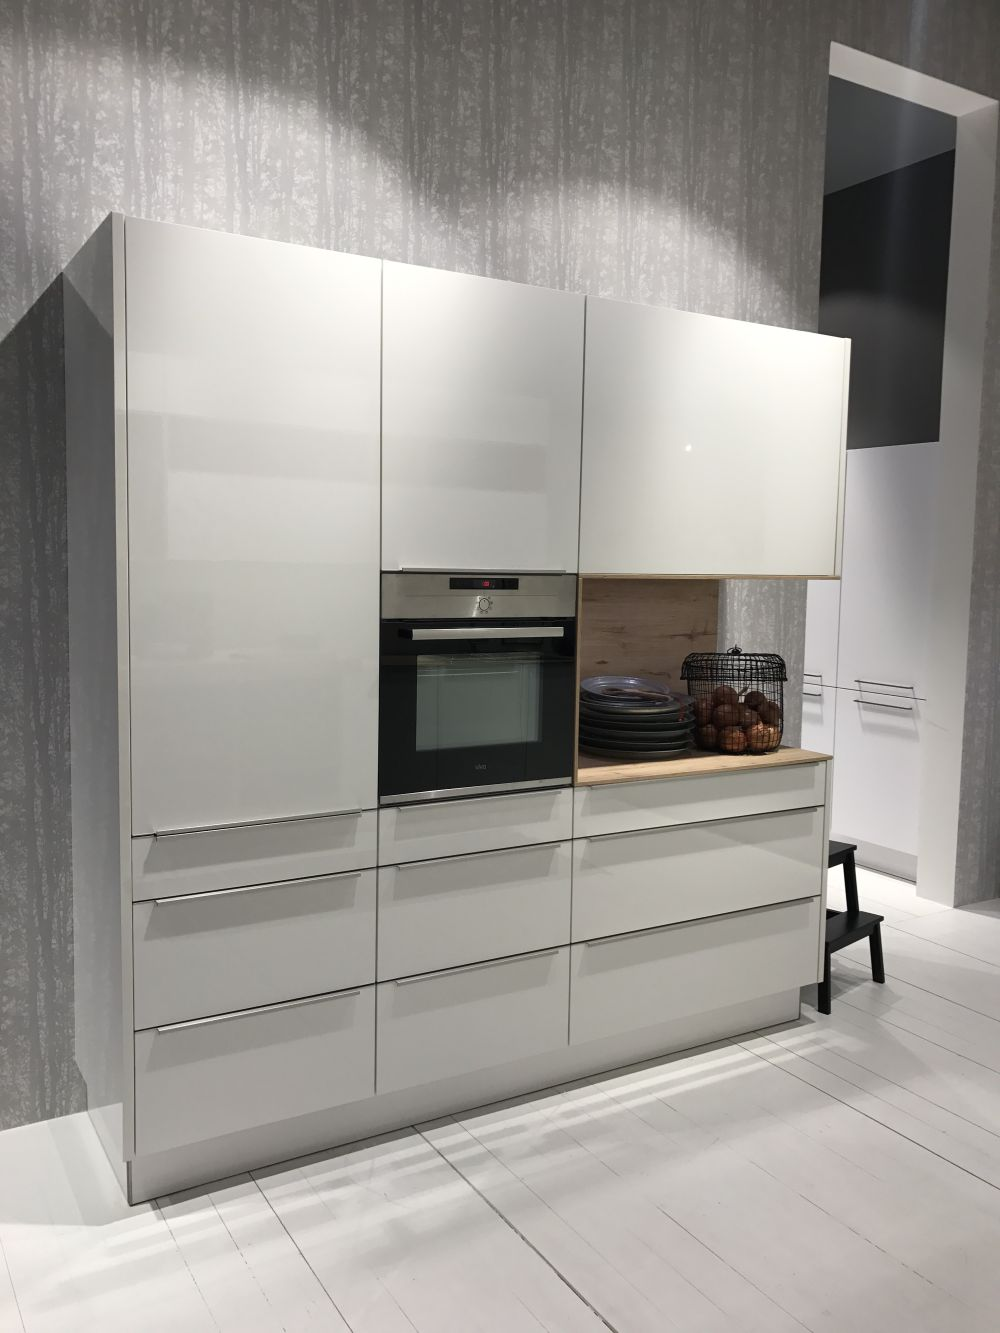 All The Cool Characteristics Of Modern Kitchen Cabinets,United Airlines Baggage Restrictions Basic Economy